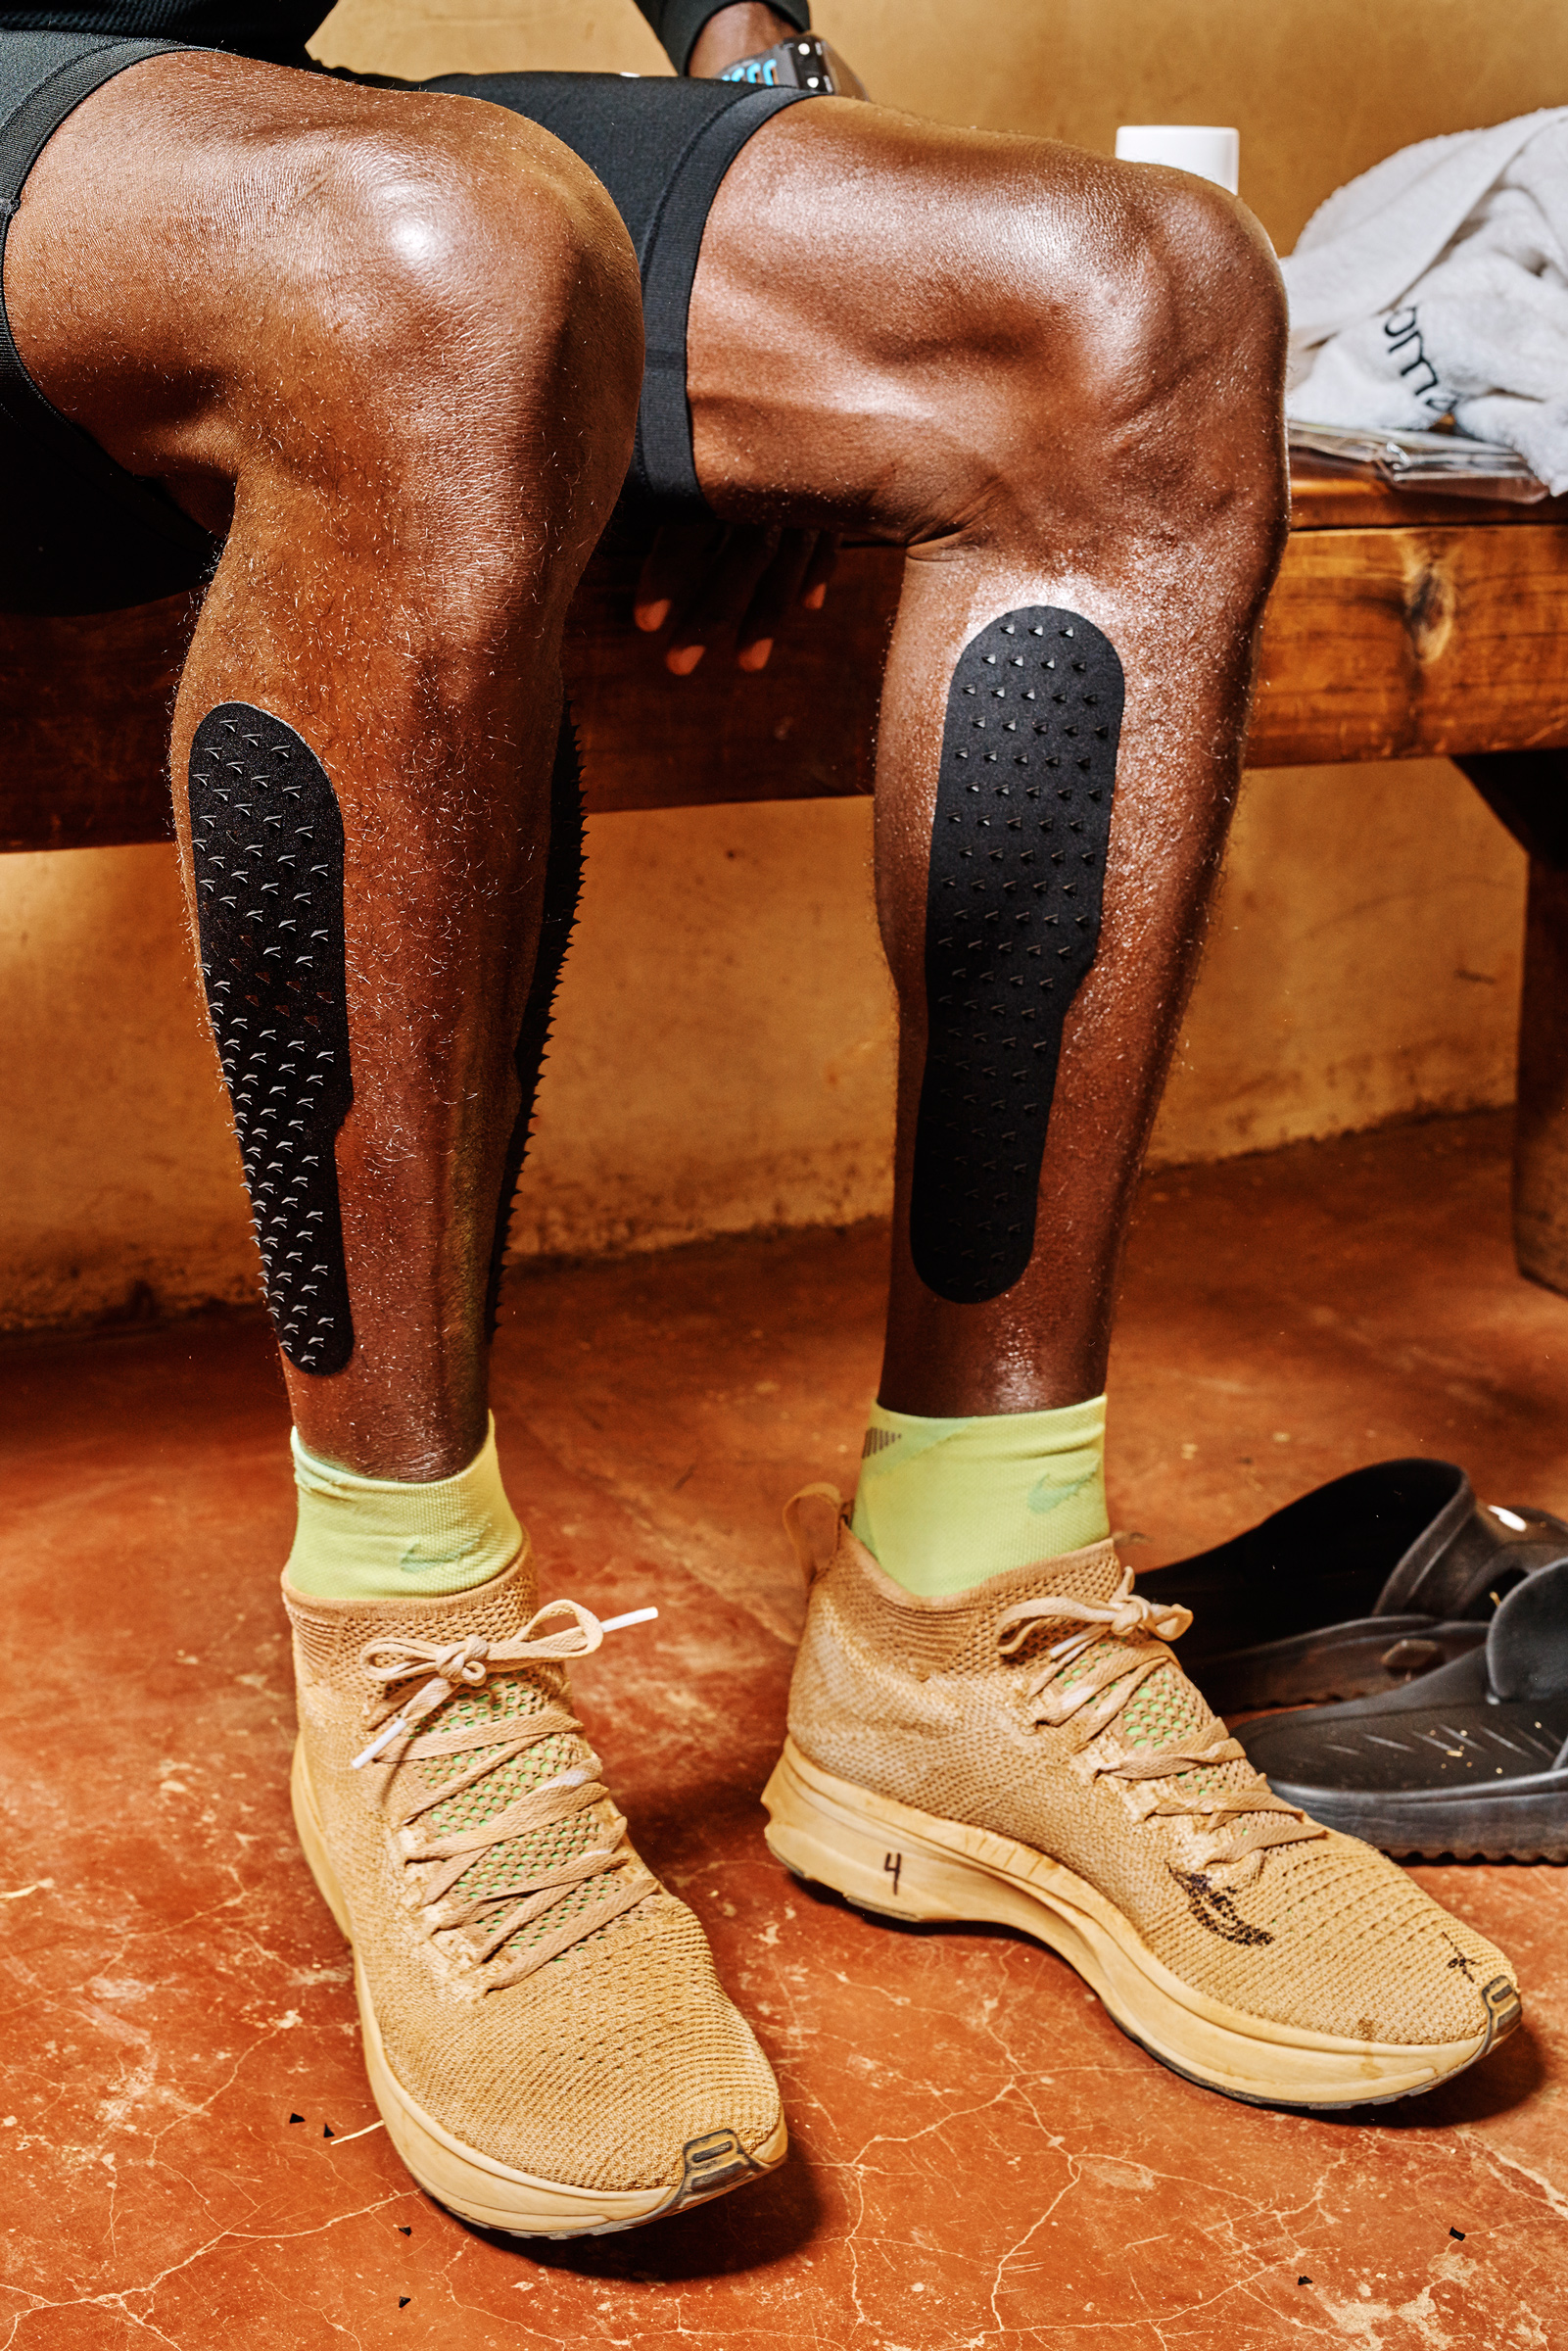 nike 4 vapor fly. nike breaking2 in kenya shot by cait oppermann for wired a close up of kipchoge\u0027s vaporfly 4 vapor fly